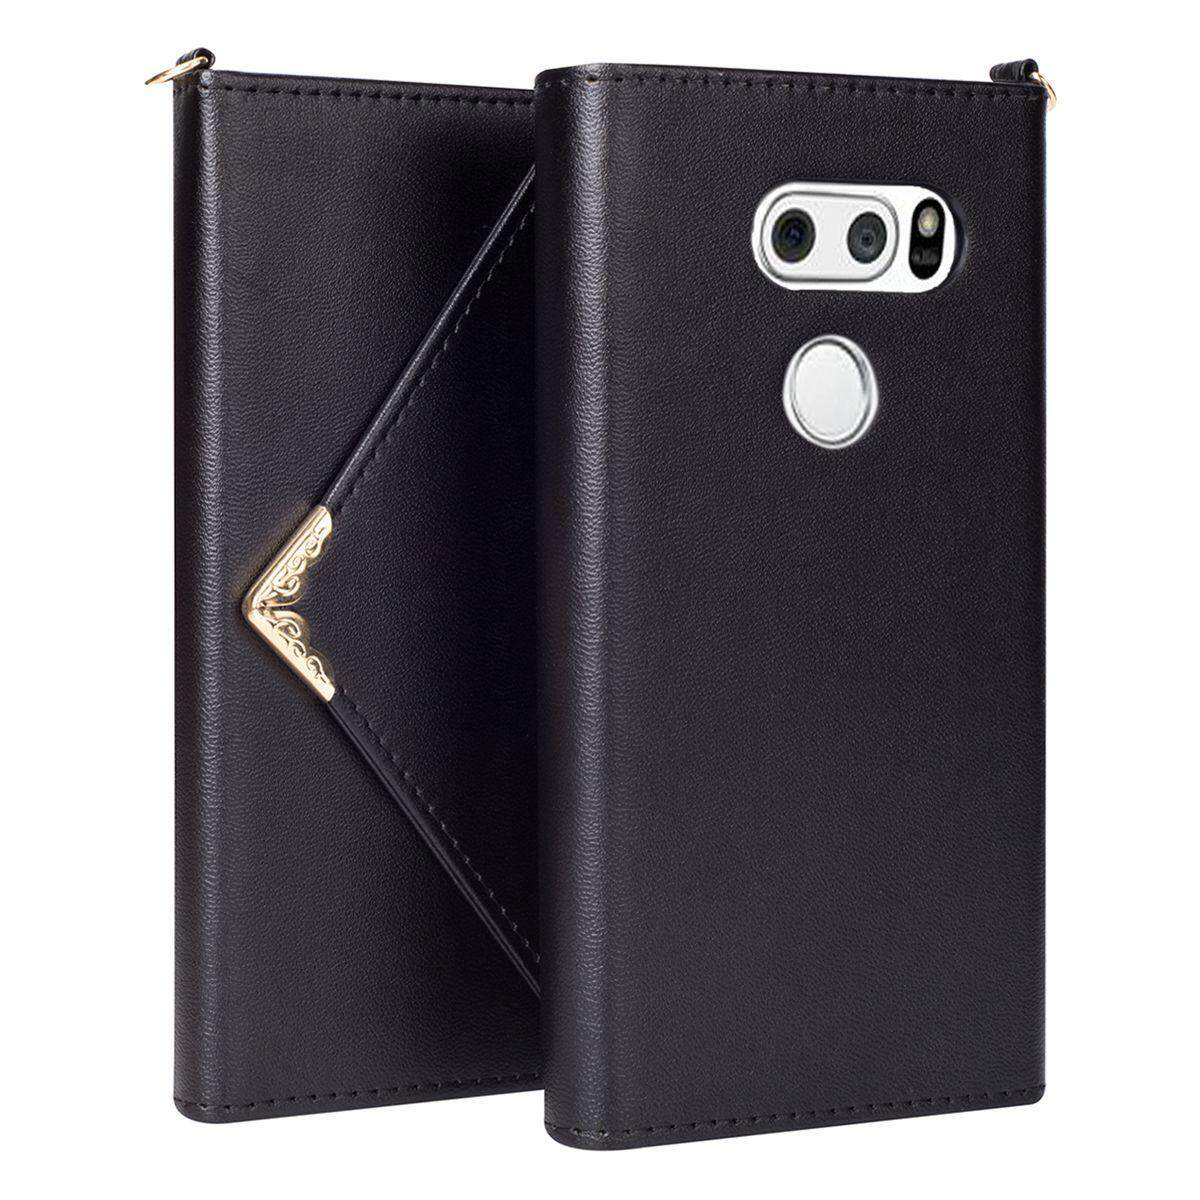 Discount Lg V30 V30 Case Meishengkai High Quality Pu Leather Envelope Style Design Wristlet Handbag Magnetic Flip Cards Wallet Tpu Inner Protective Book Cover Case For Lg V30 Lg V30 Plus 6 Intl Msk China